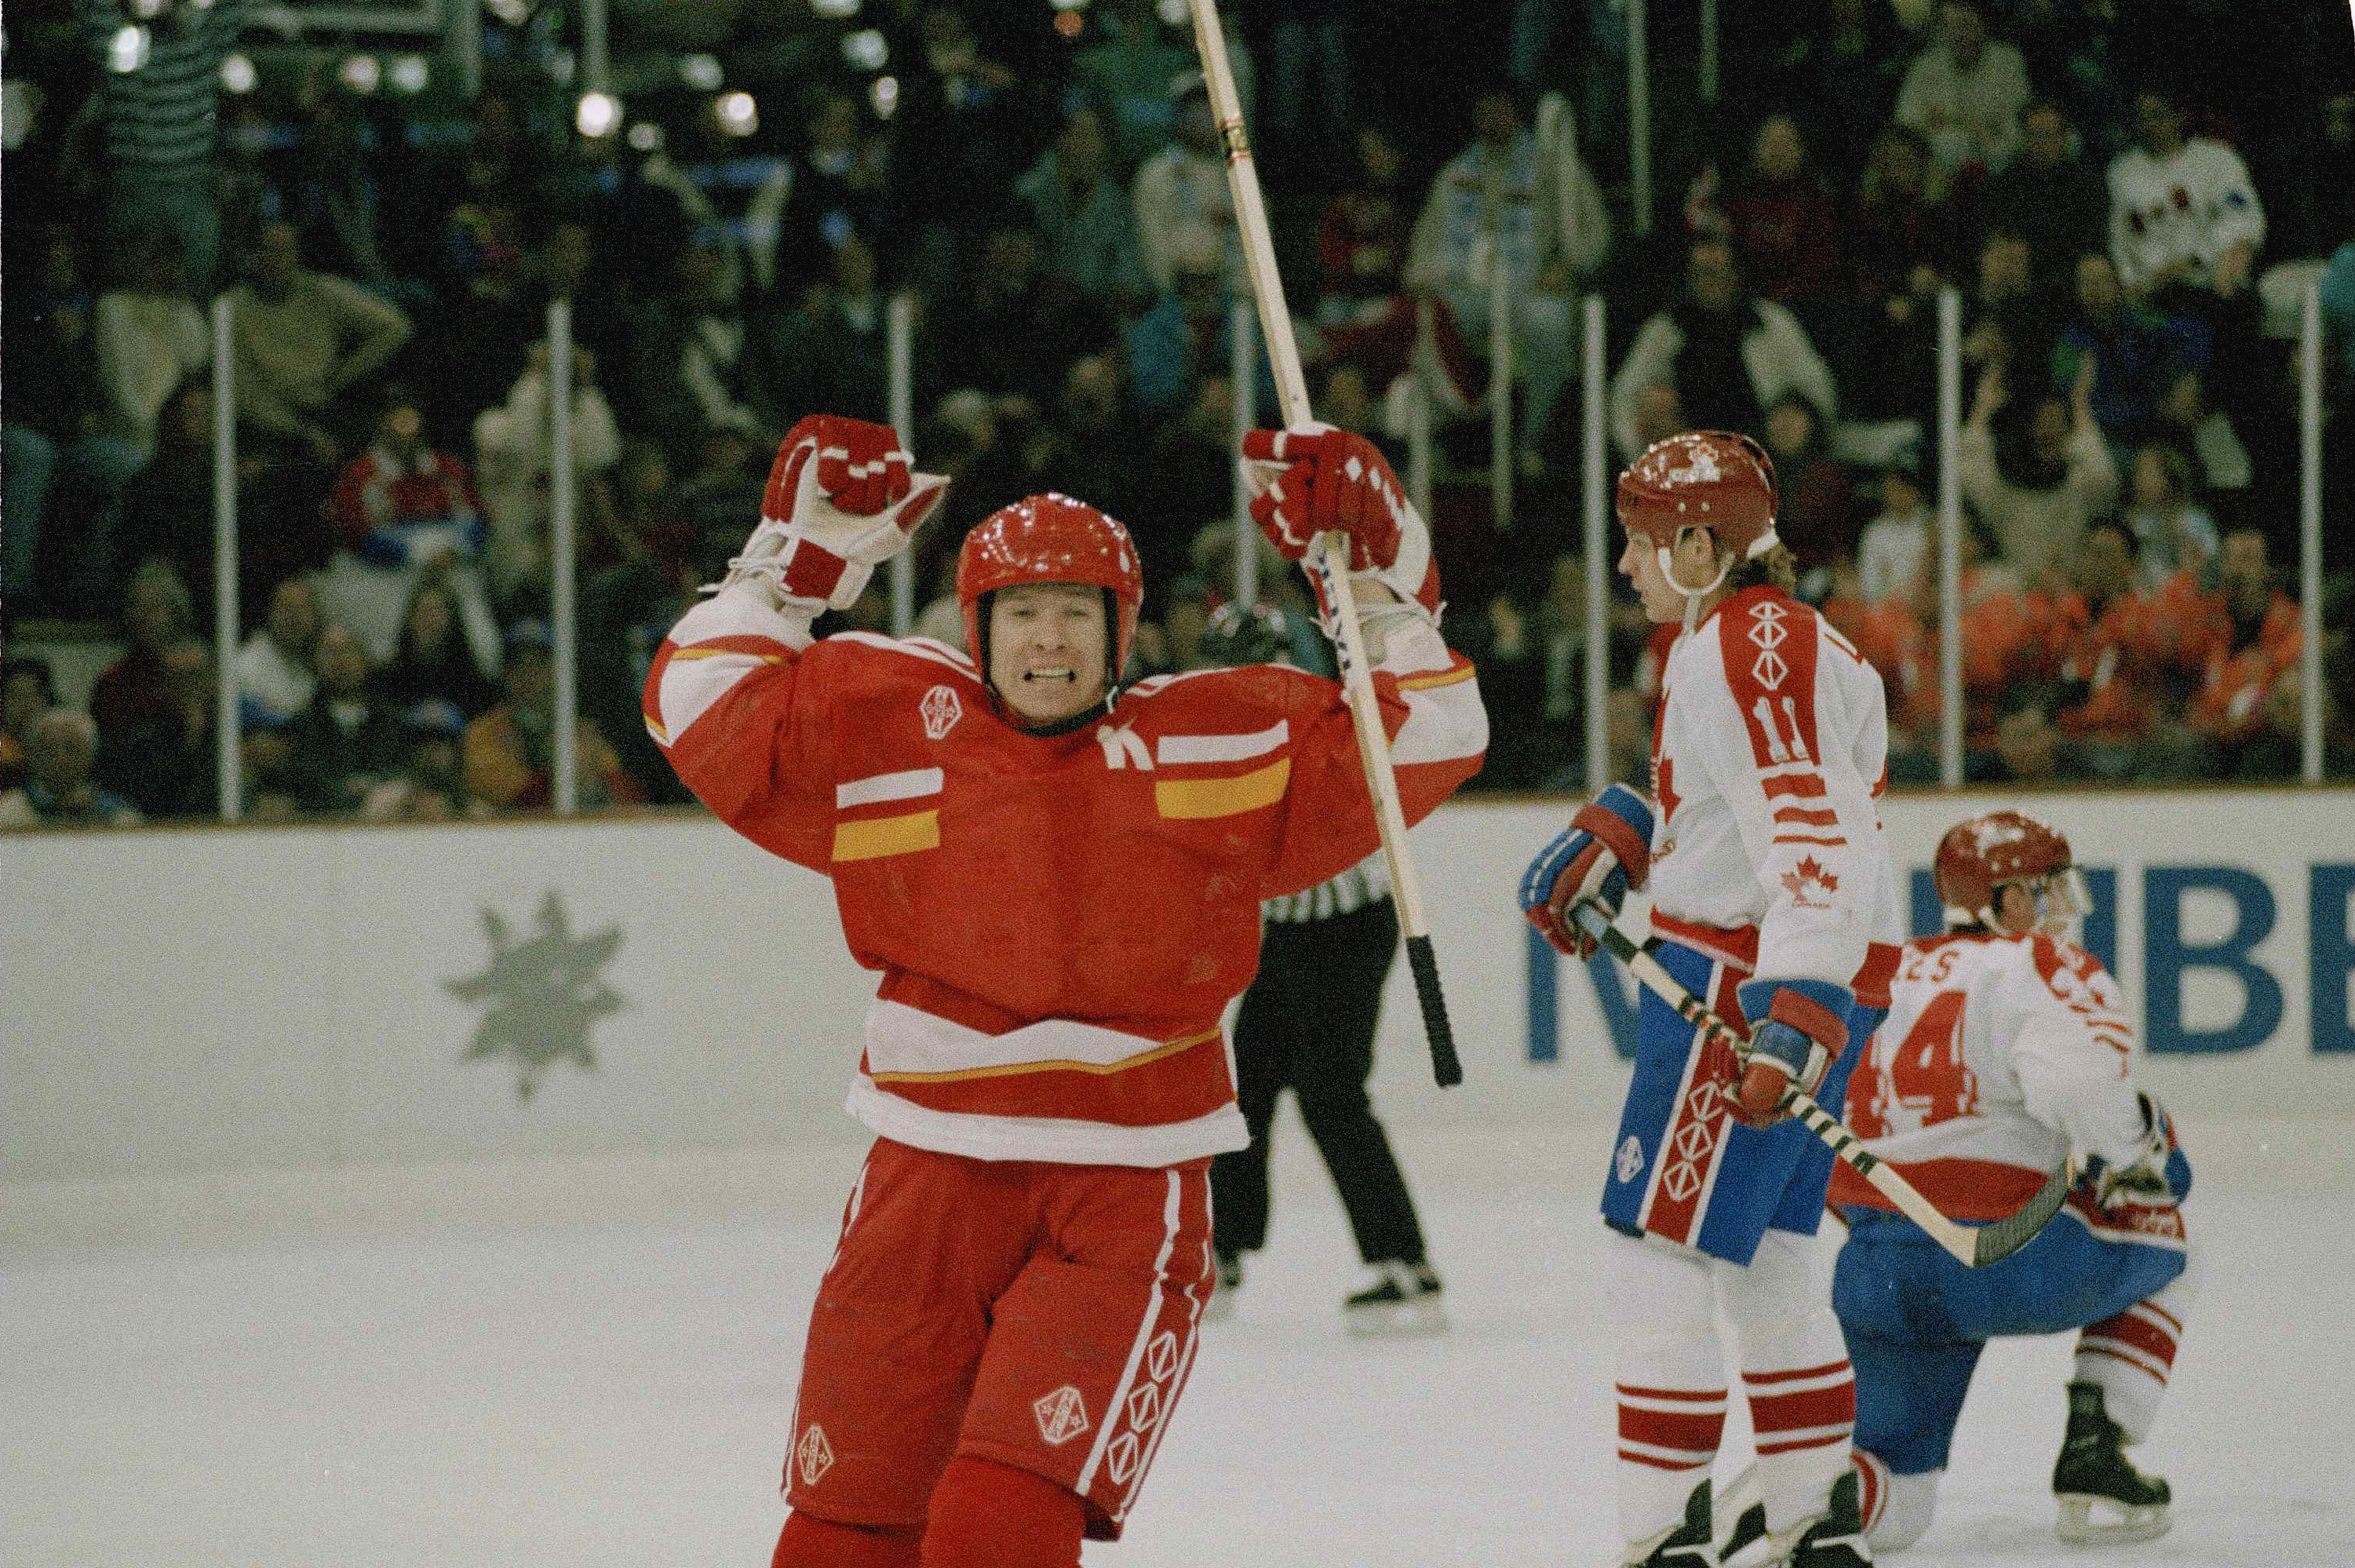 FILE - In this Feb. 23, 1992, file photo, Vyacheslav Bykov of the Unified Team celebrates after scoring the third goal against Canada during the ice hockey final of the XVI Winter Olympics in Maribel, France. After a week of turmoil for Olympic hockey, Ru